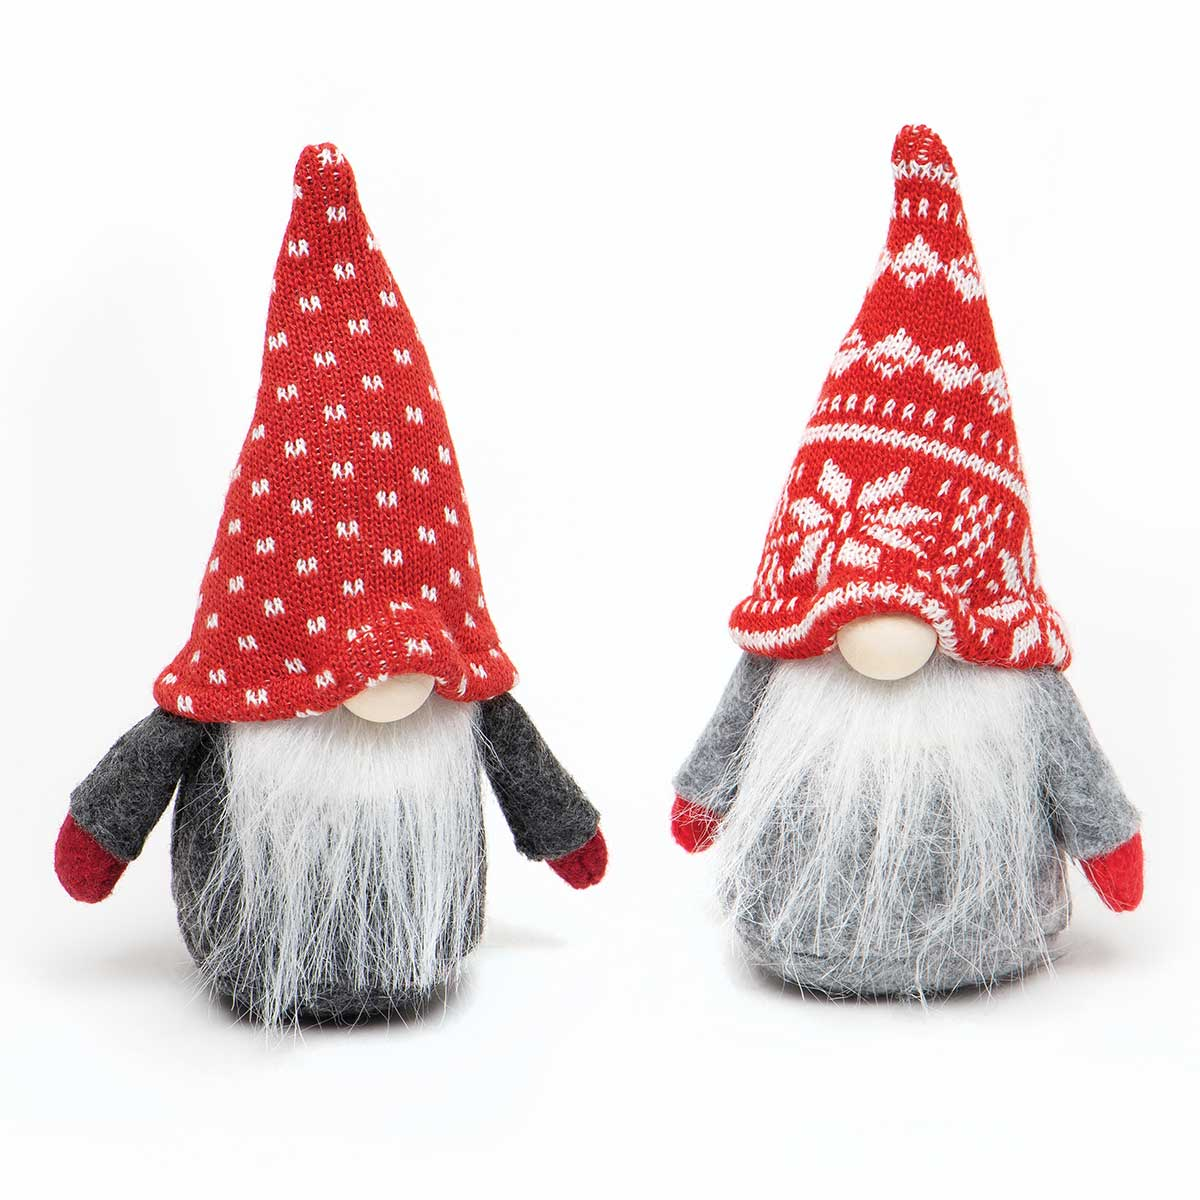 WEE GNOME ORNAMENT RED/GREY WITH PINDOT/POINSETTIA